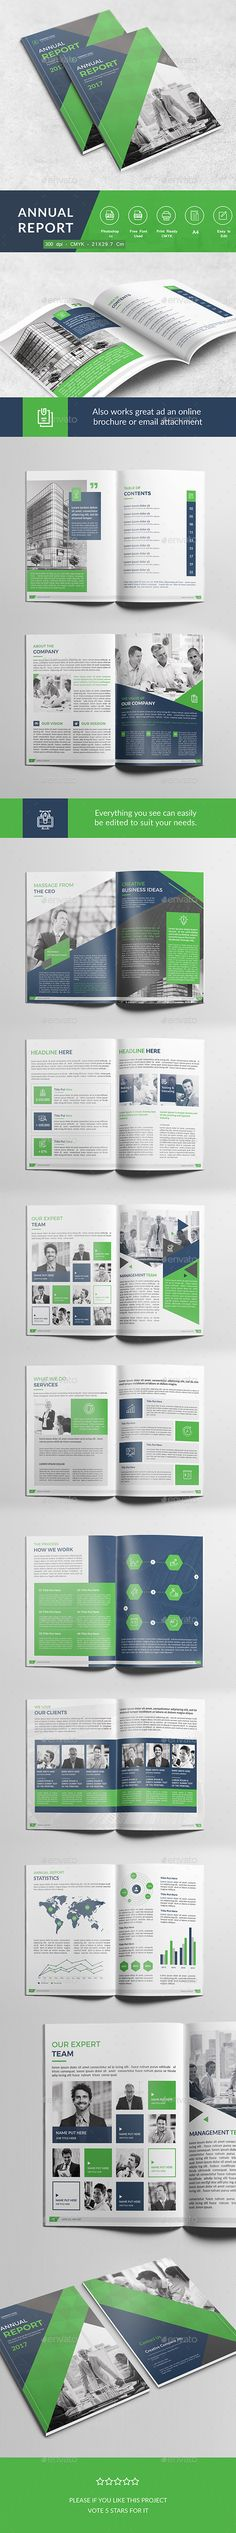 Annual Report \u2014 InDesign INDD #85x11 #corporate template \u2022 Download - Summary Report Template